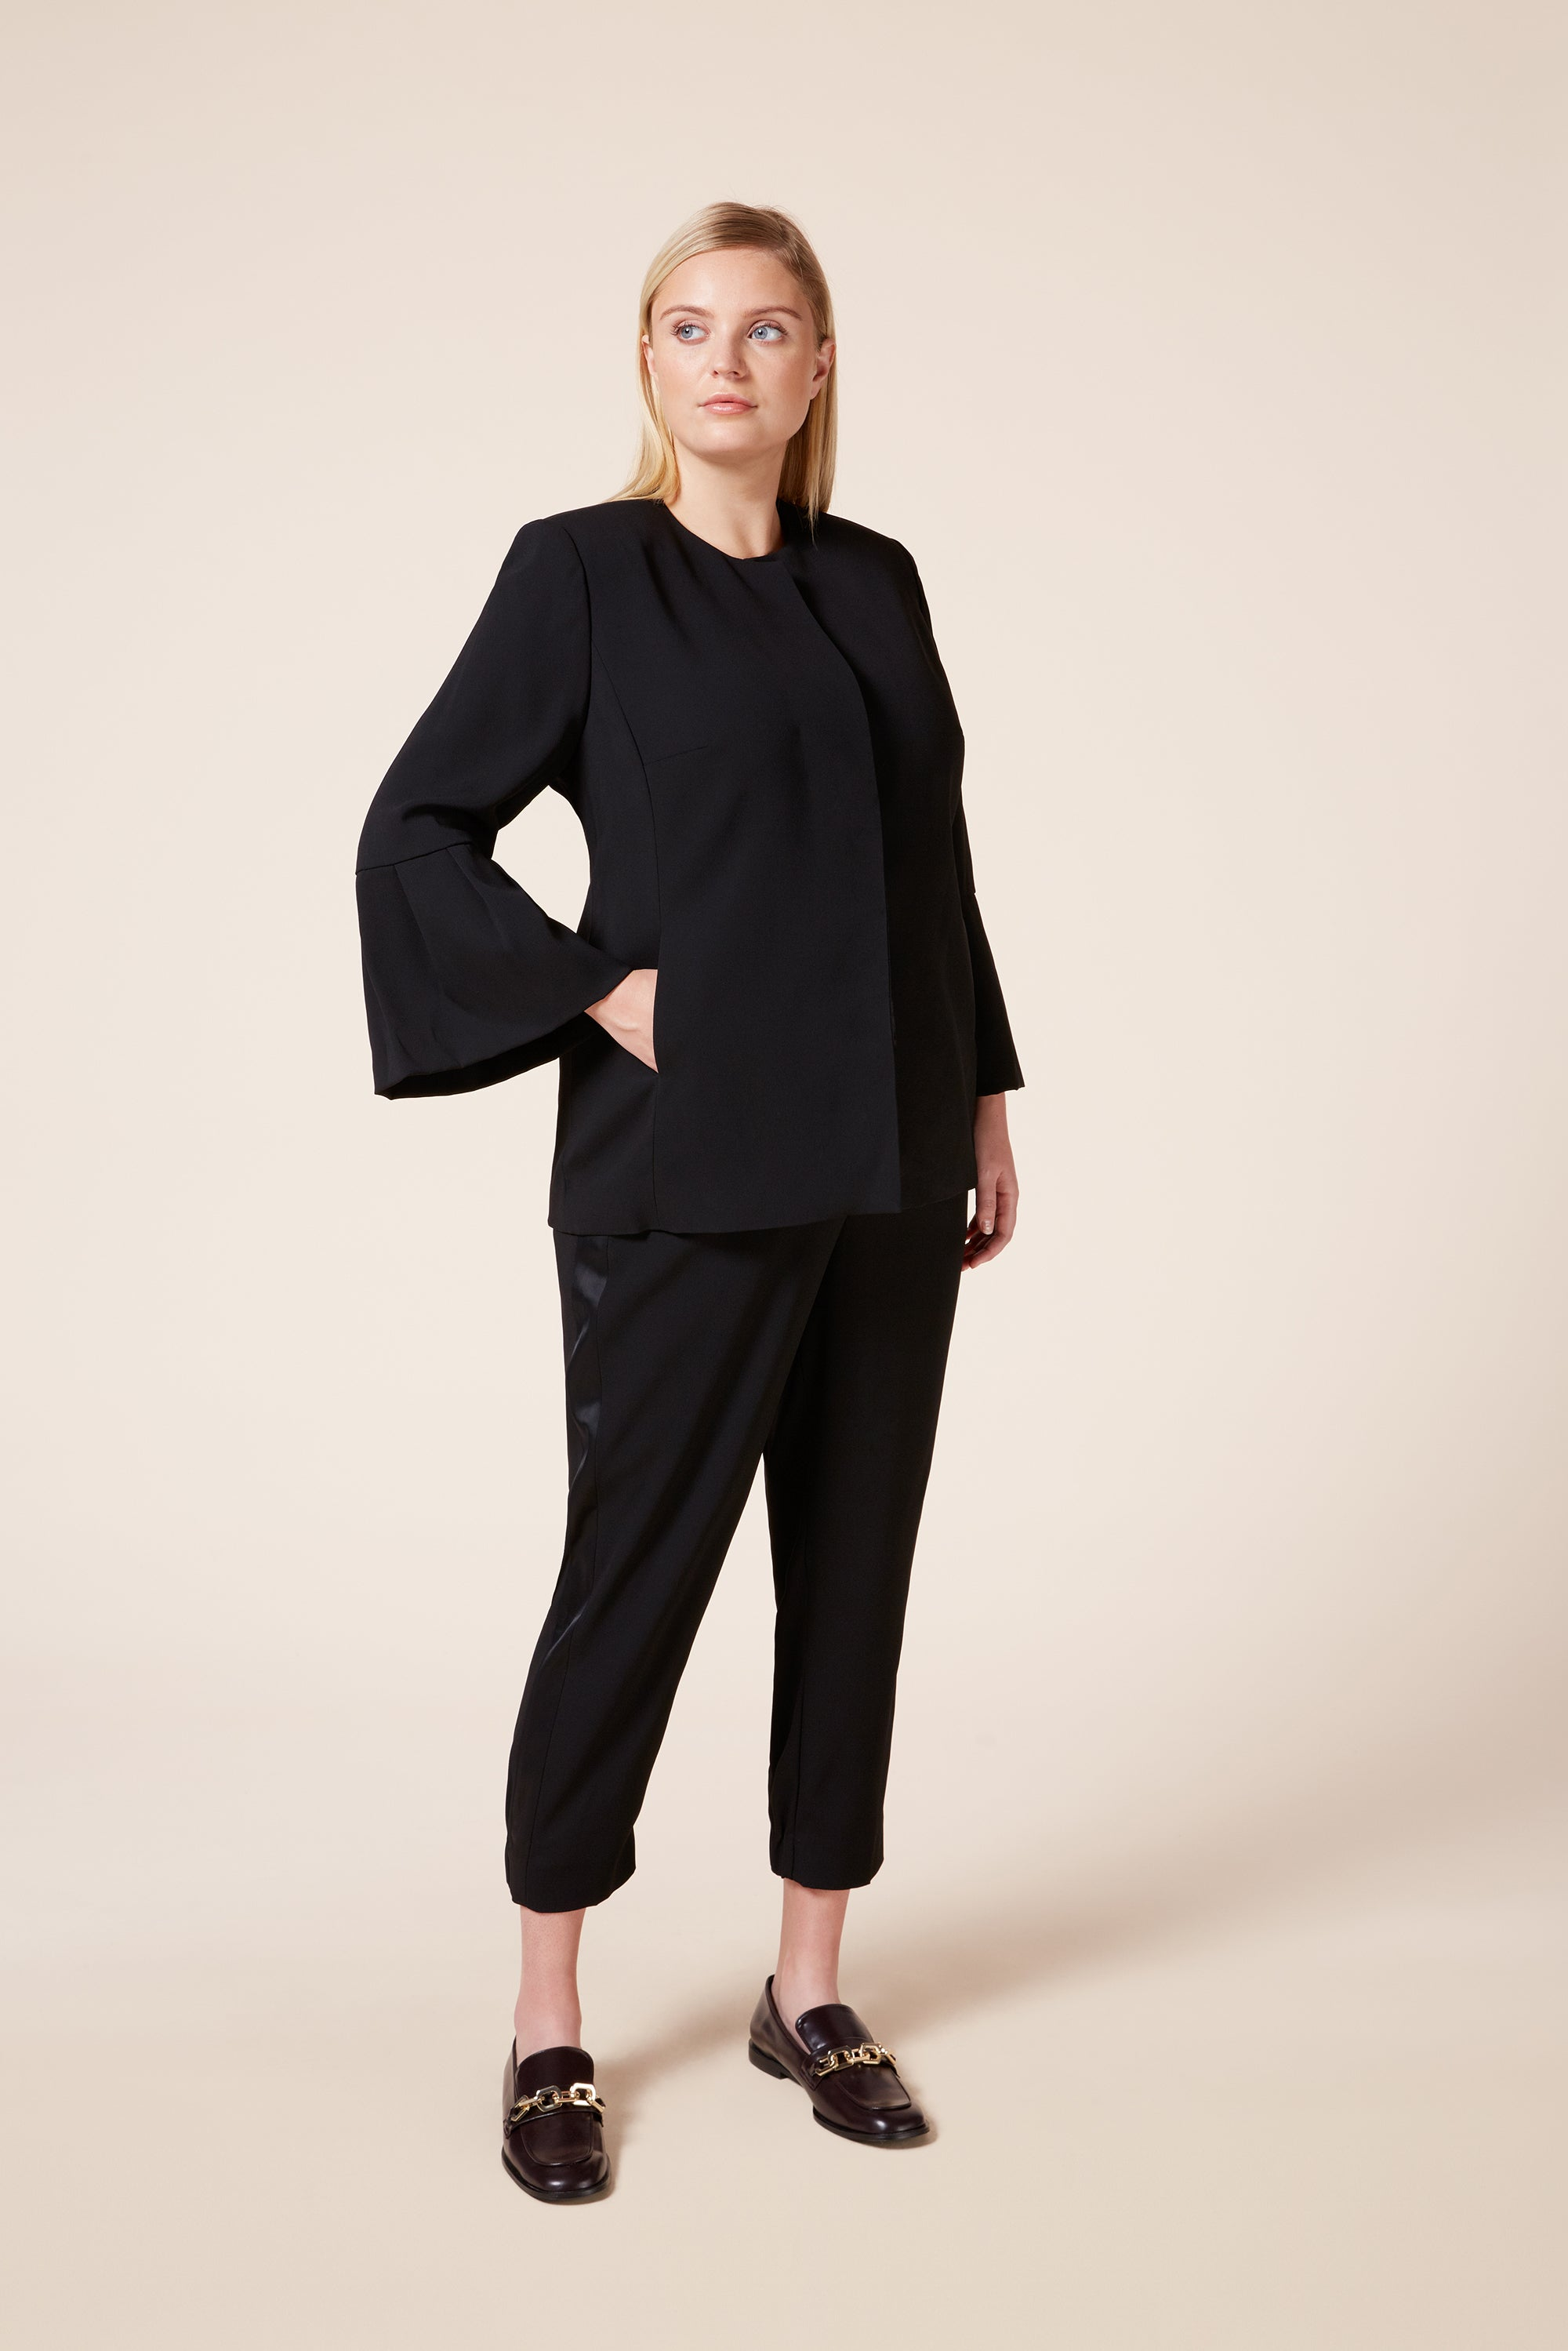 Plus size black tailored blazer with flounce sleeves and pockets